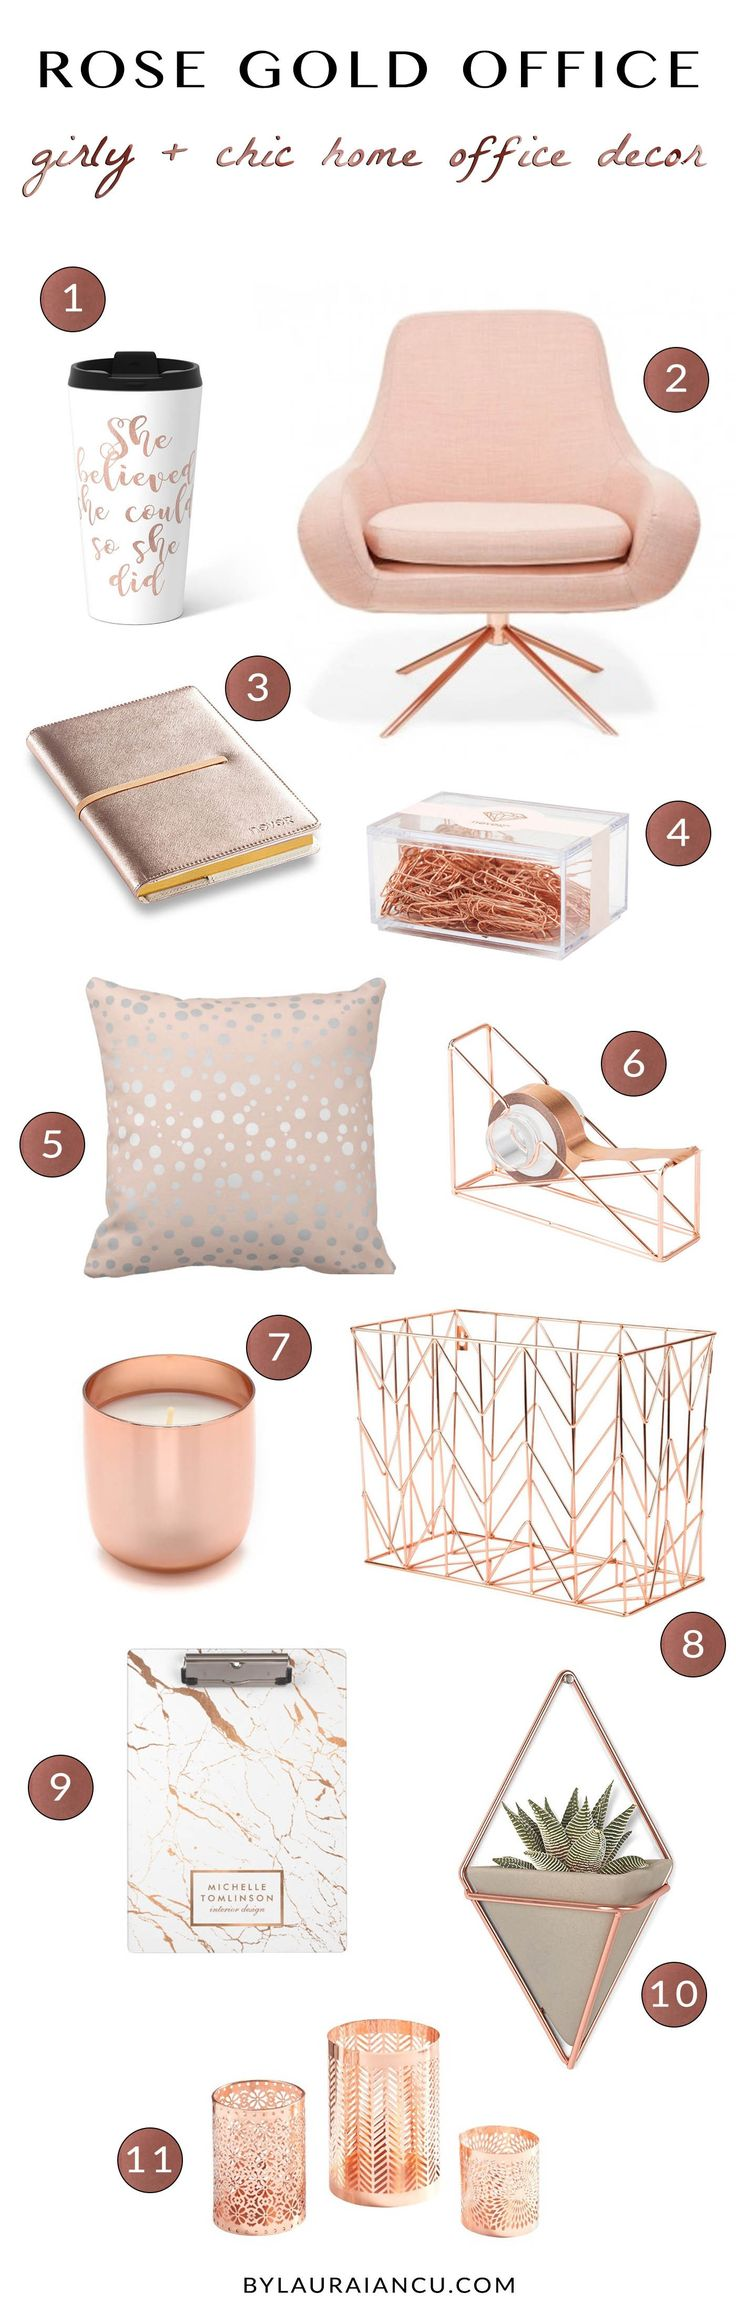 Girly and chic home office decor ideas for work from home entrepreneurs, moms, bloggers and creatives.